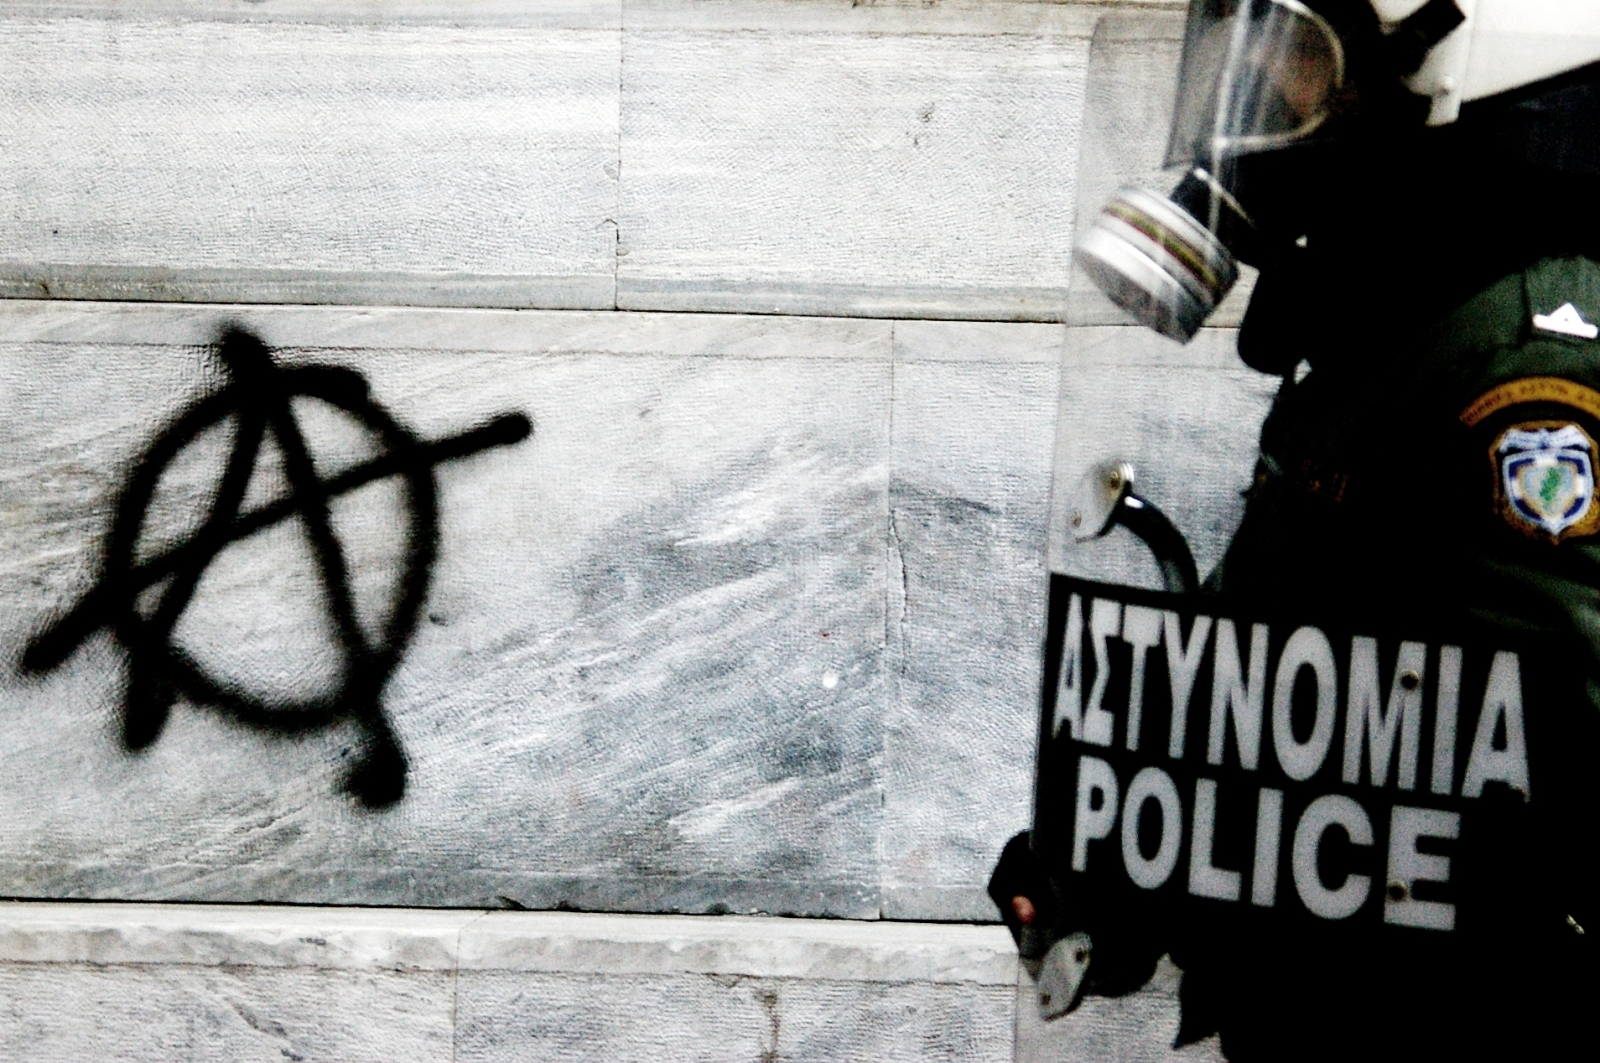 Patterns For Girls Wallpaper High Defintion Riot Police Paint Spray Anarchy Logos 1600x1063 Wallpaper